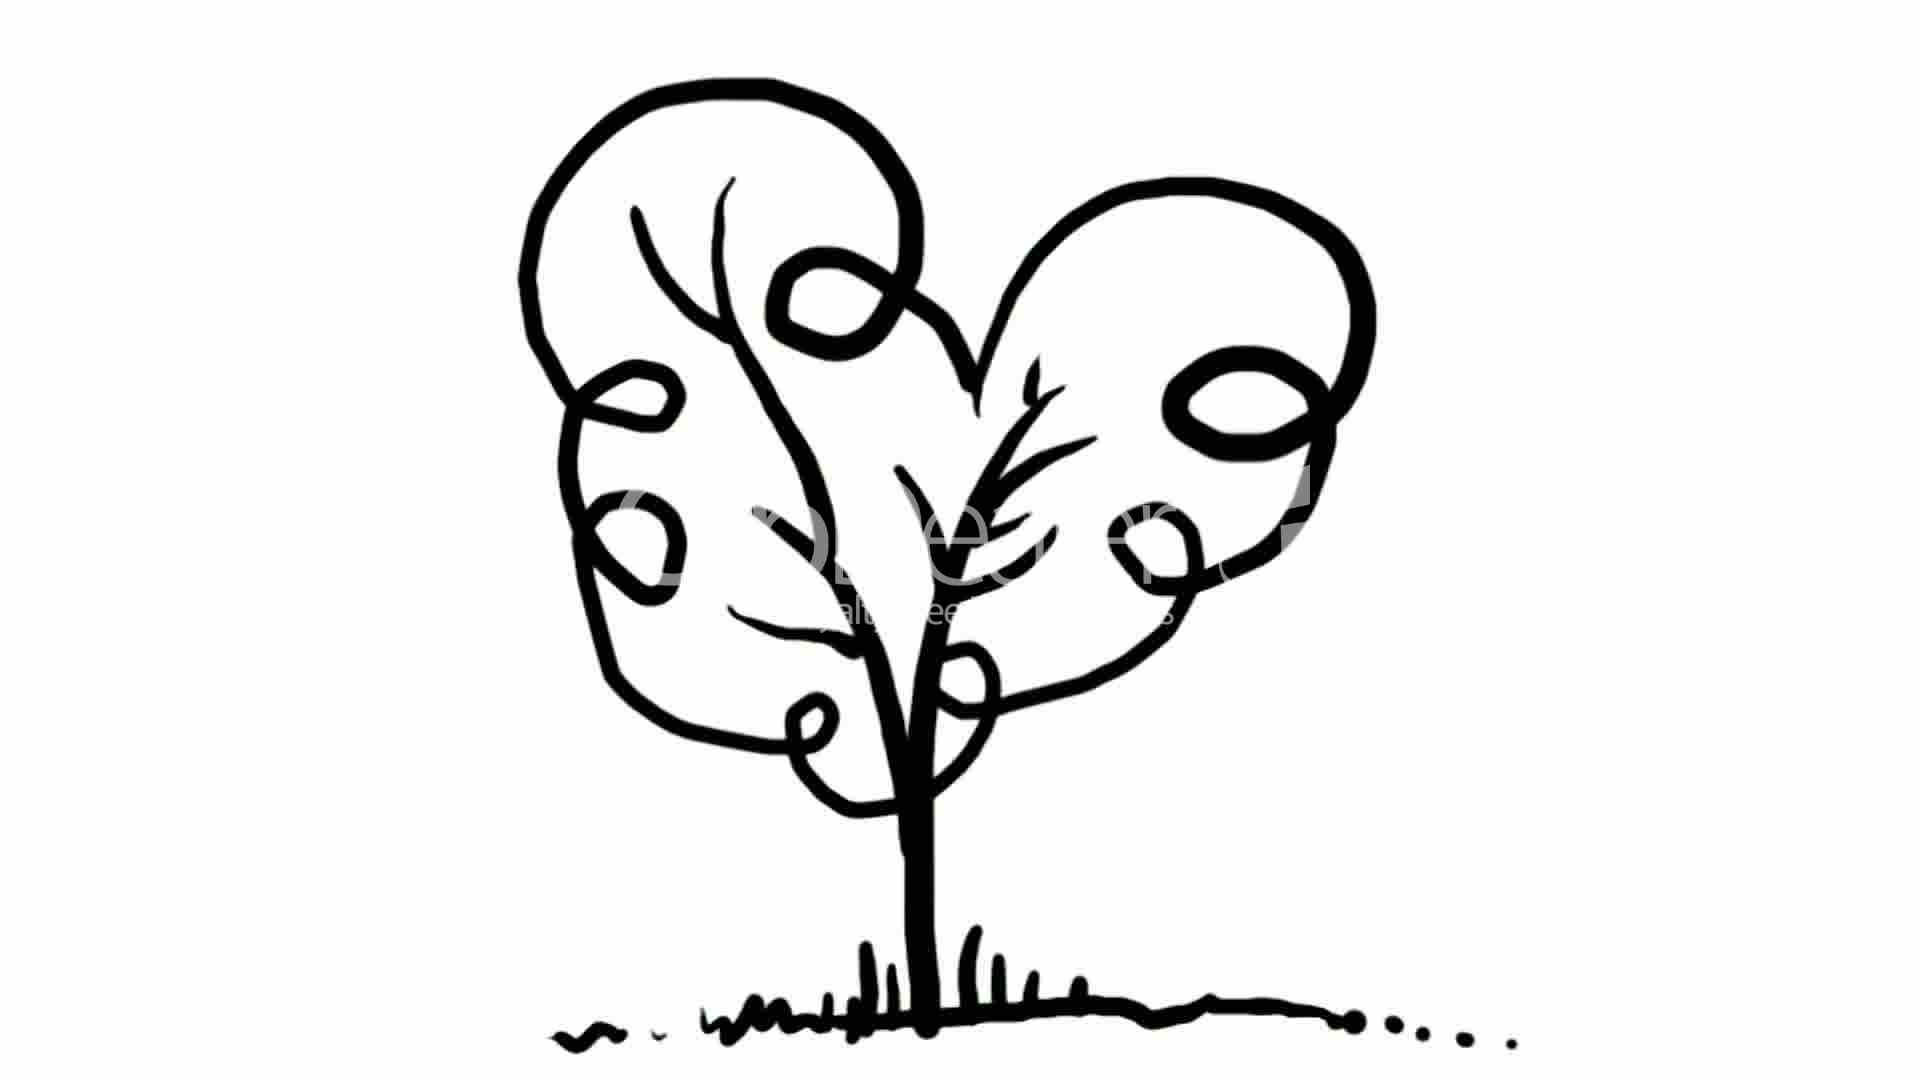 drawing of tree,Hand painting video material,sketch